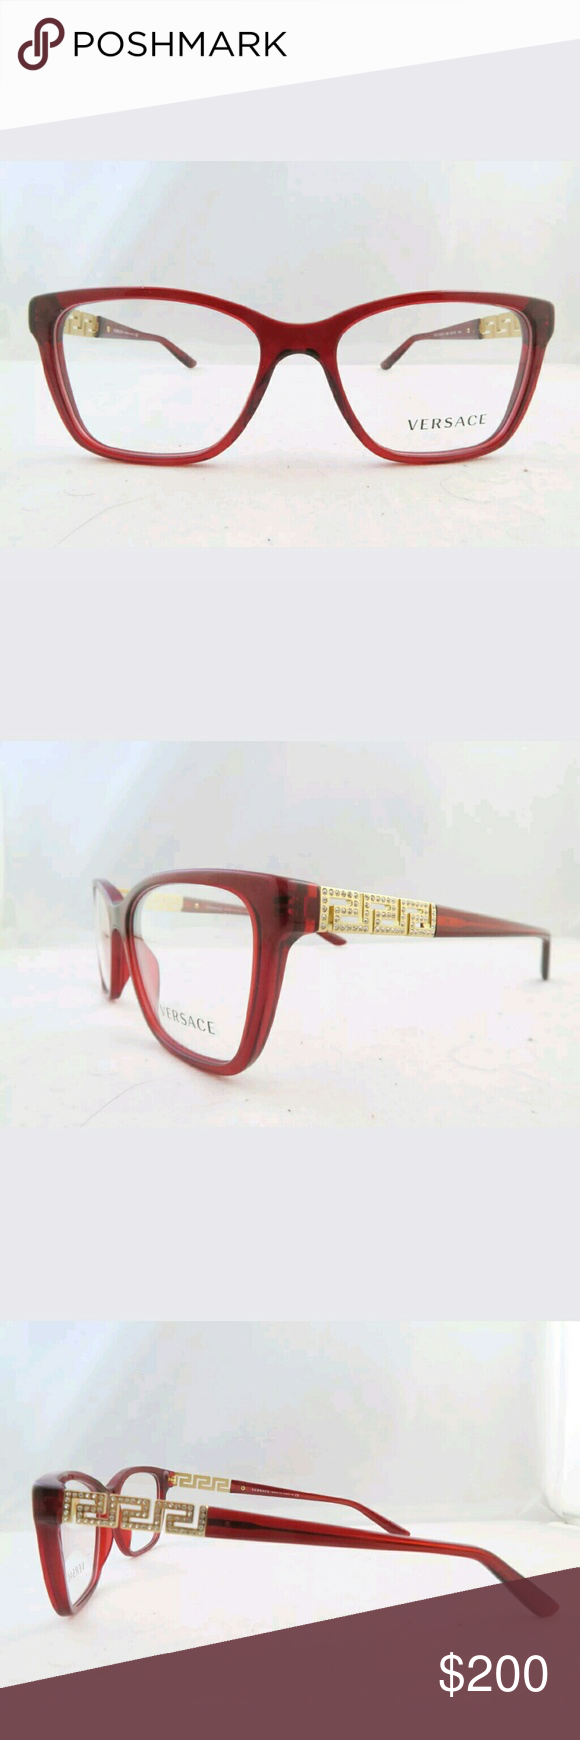 Versace Eyeglasses New and authentic Versace Eyeglasses Red and gold ...